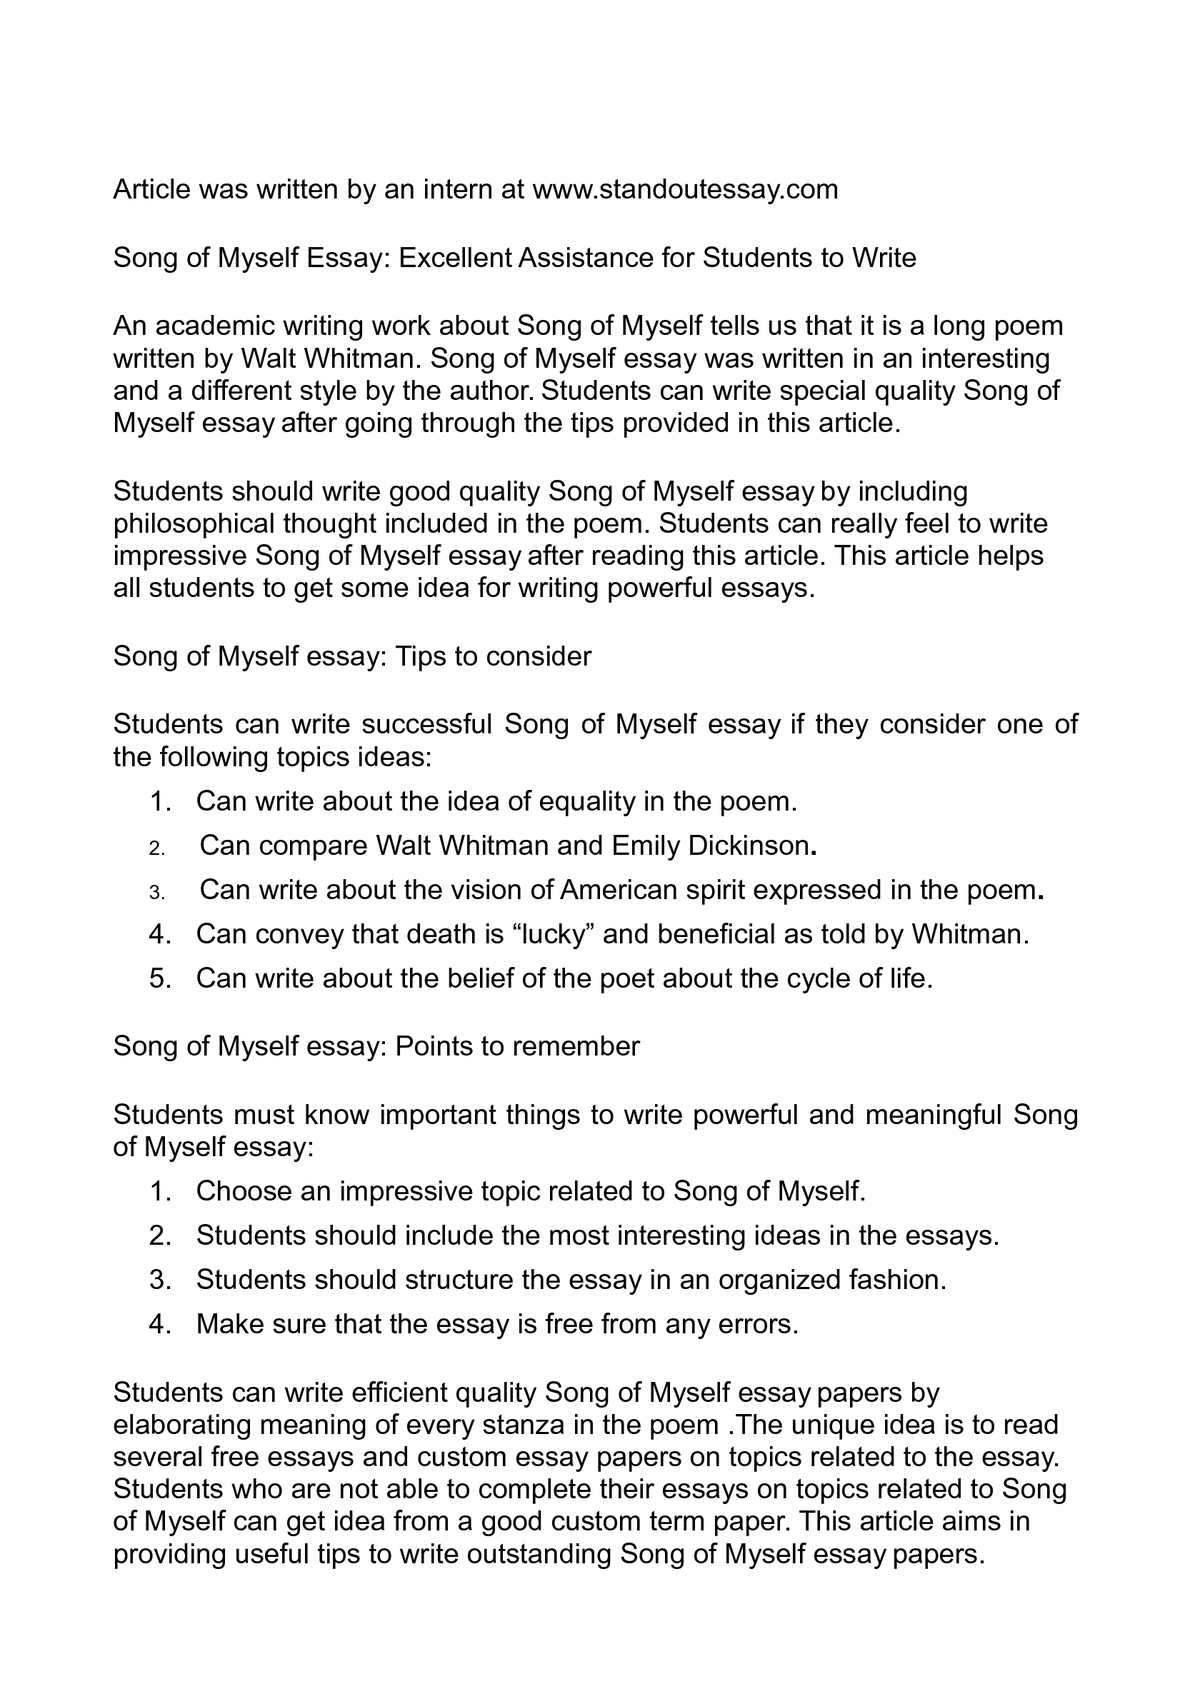 song of myself essay excellent assistance for students  song of myself essay excellent assistance for students to write